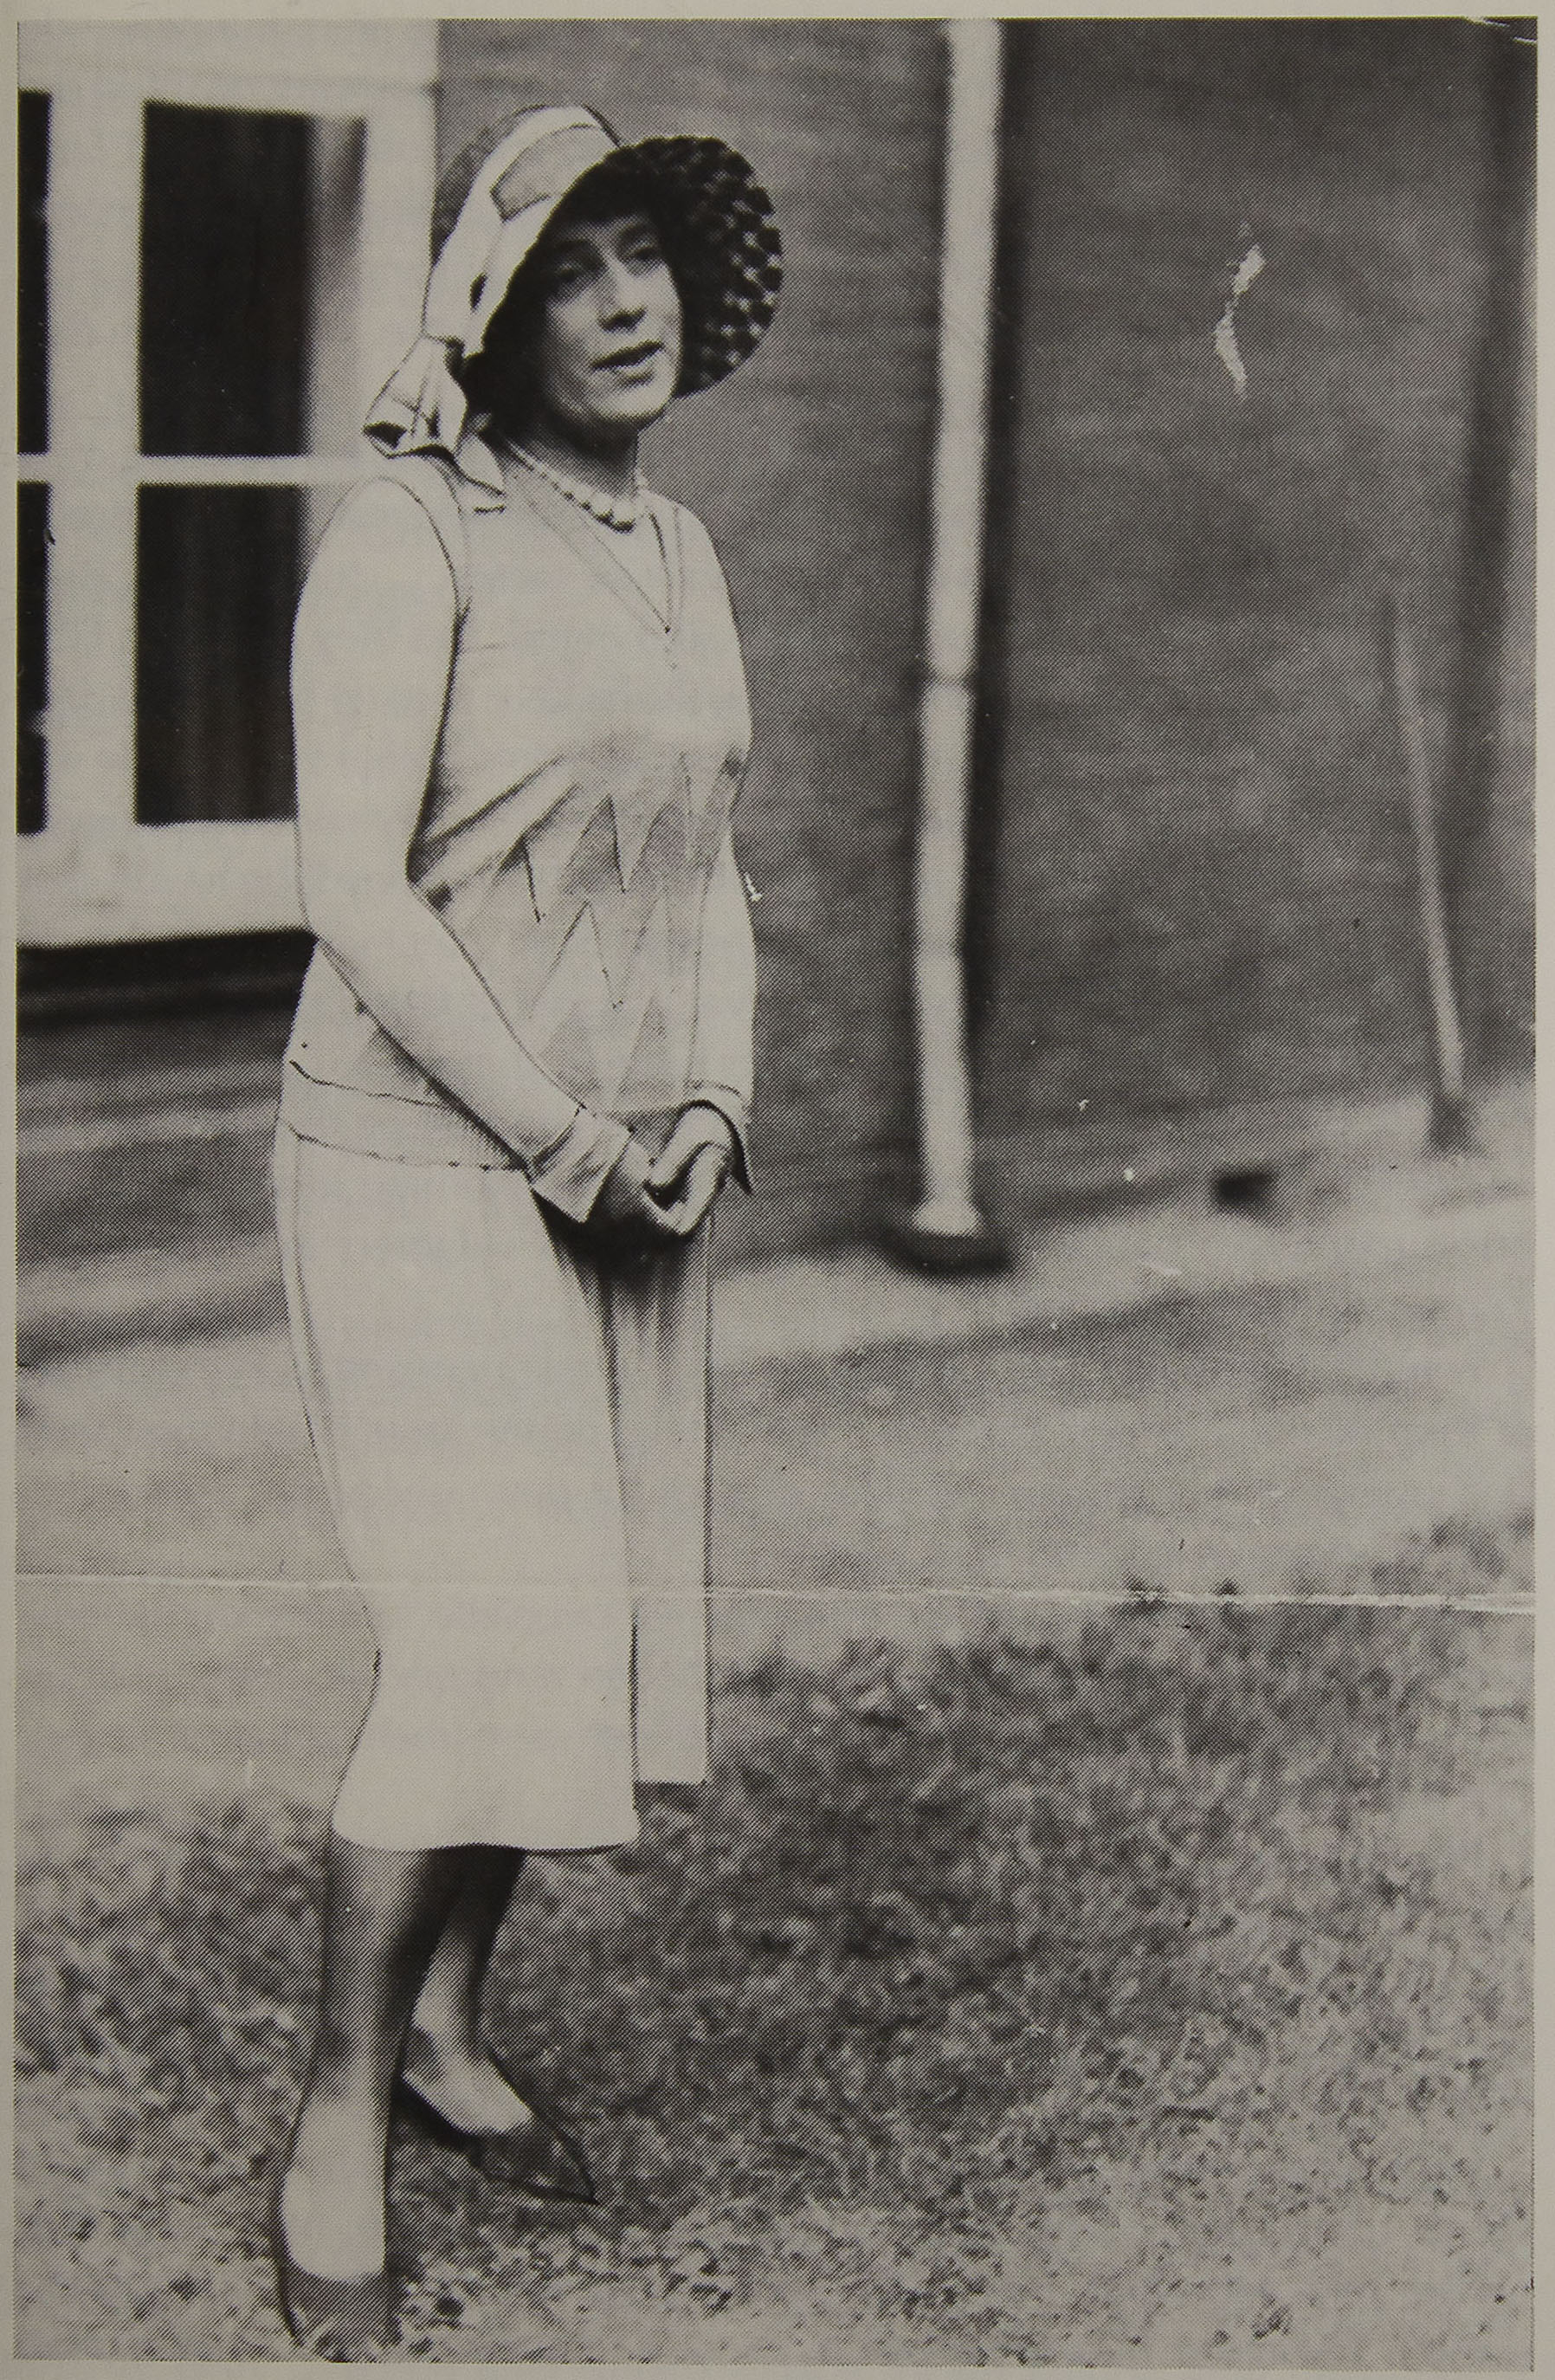 Lili Elbe stands outside with                      hands clasped in front and is dressed in a skir, shirt, hat, and dress                      shoes.